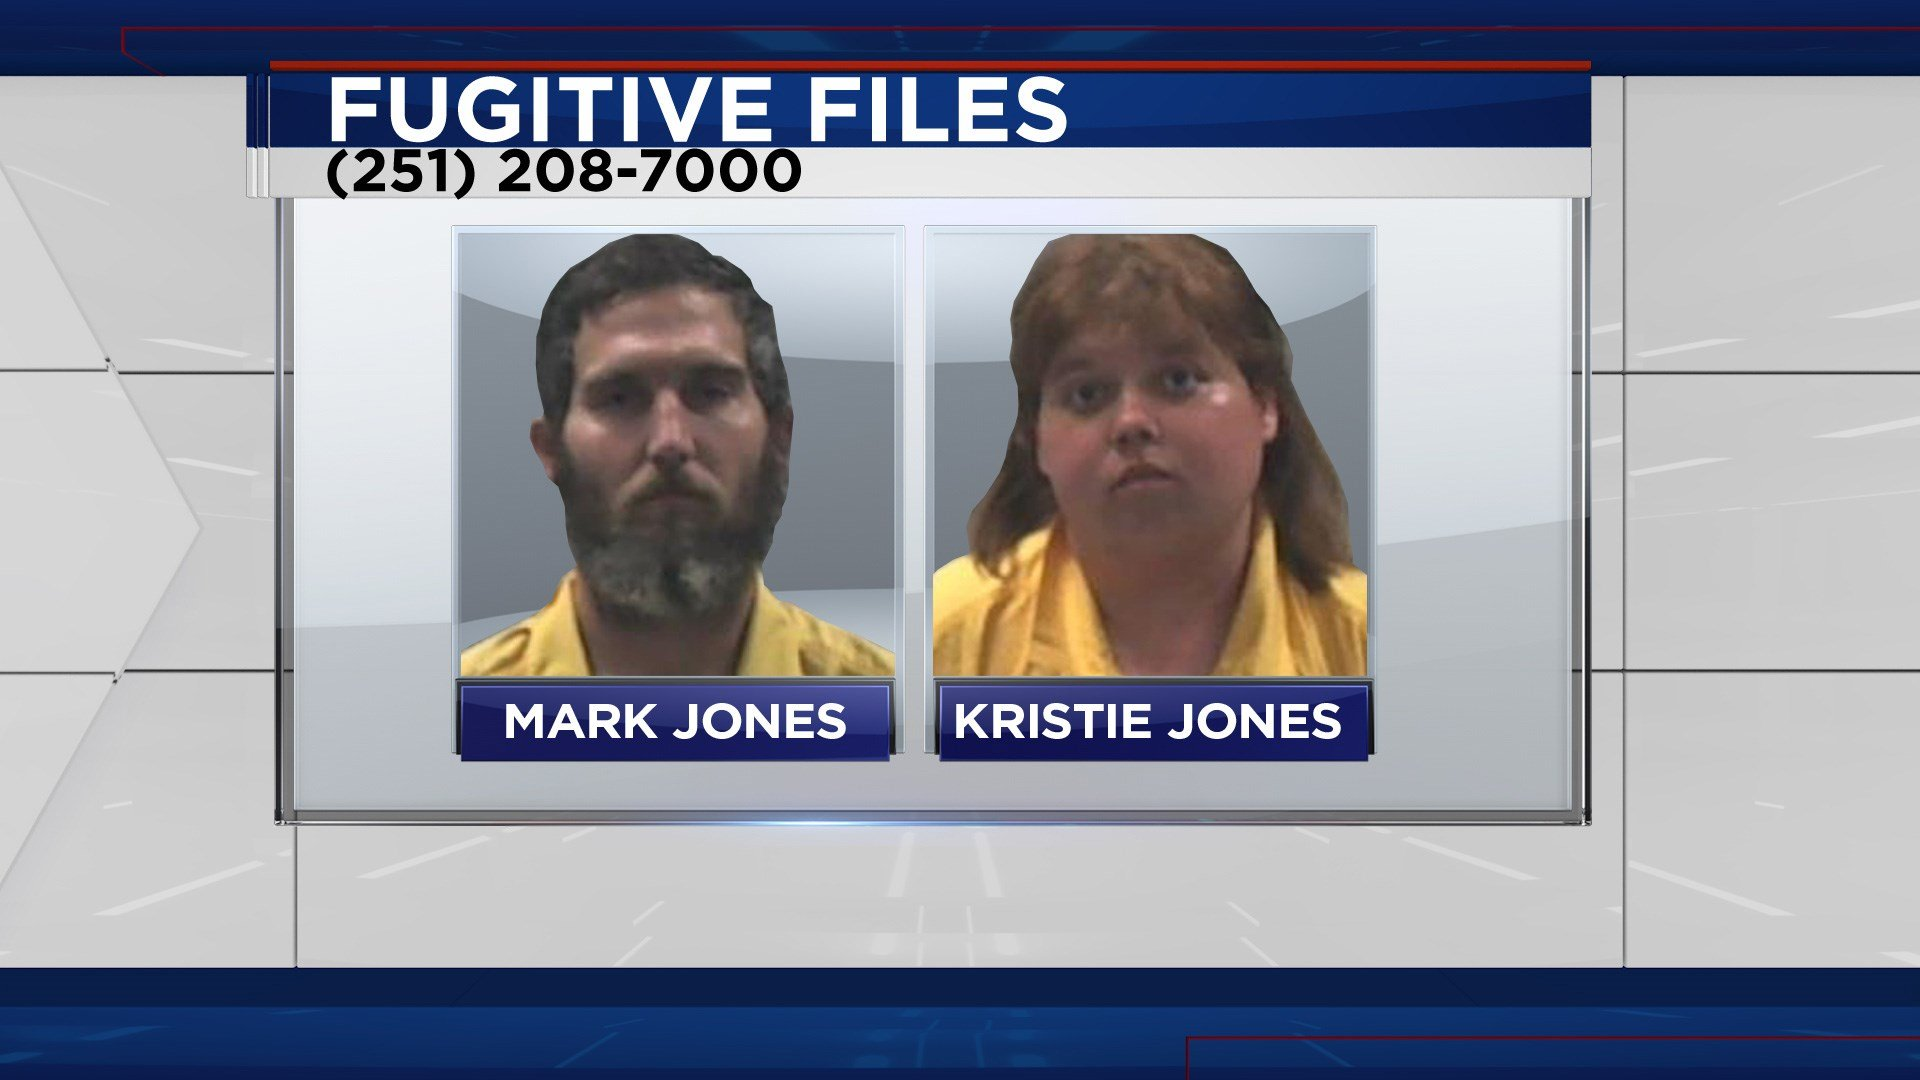 FOX10 News Fugitive Files suspects Mark and Kristie Jones (Image: Jackson Co MS SO)